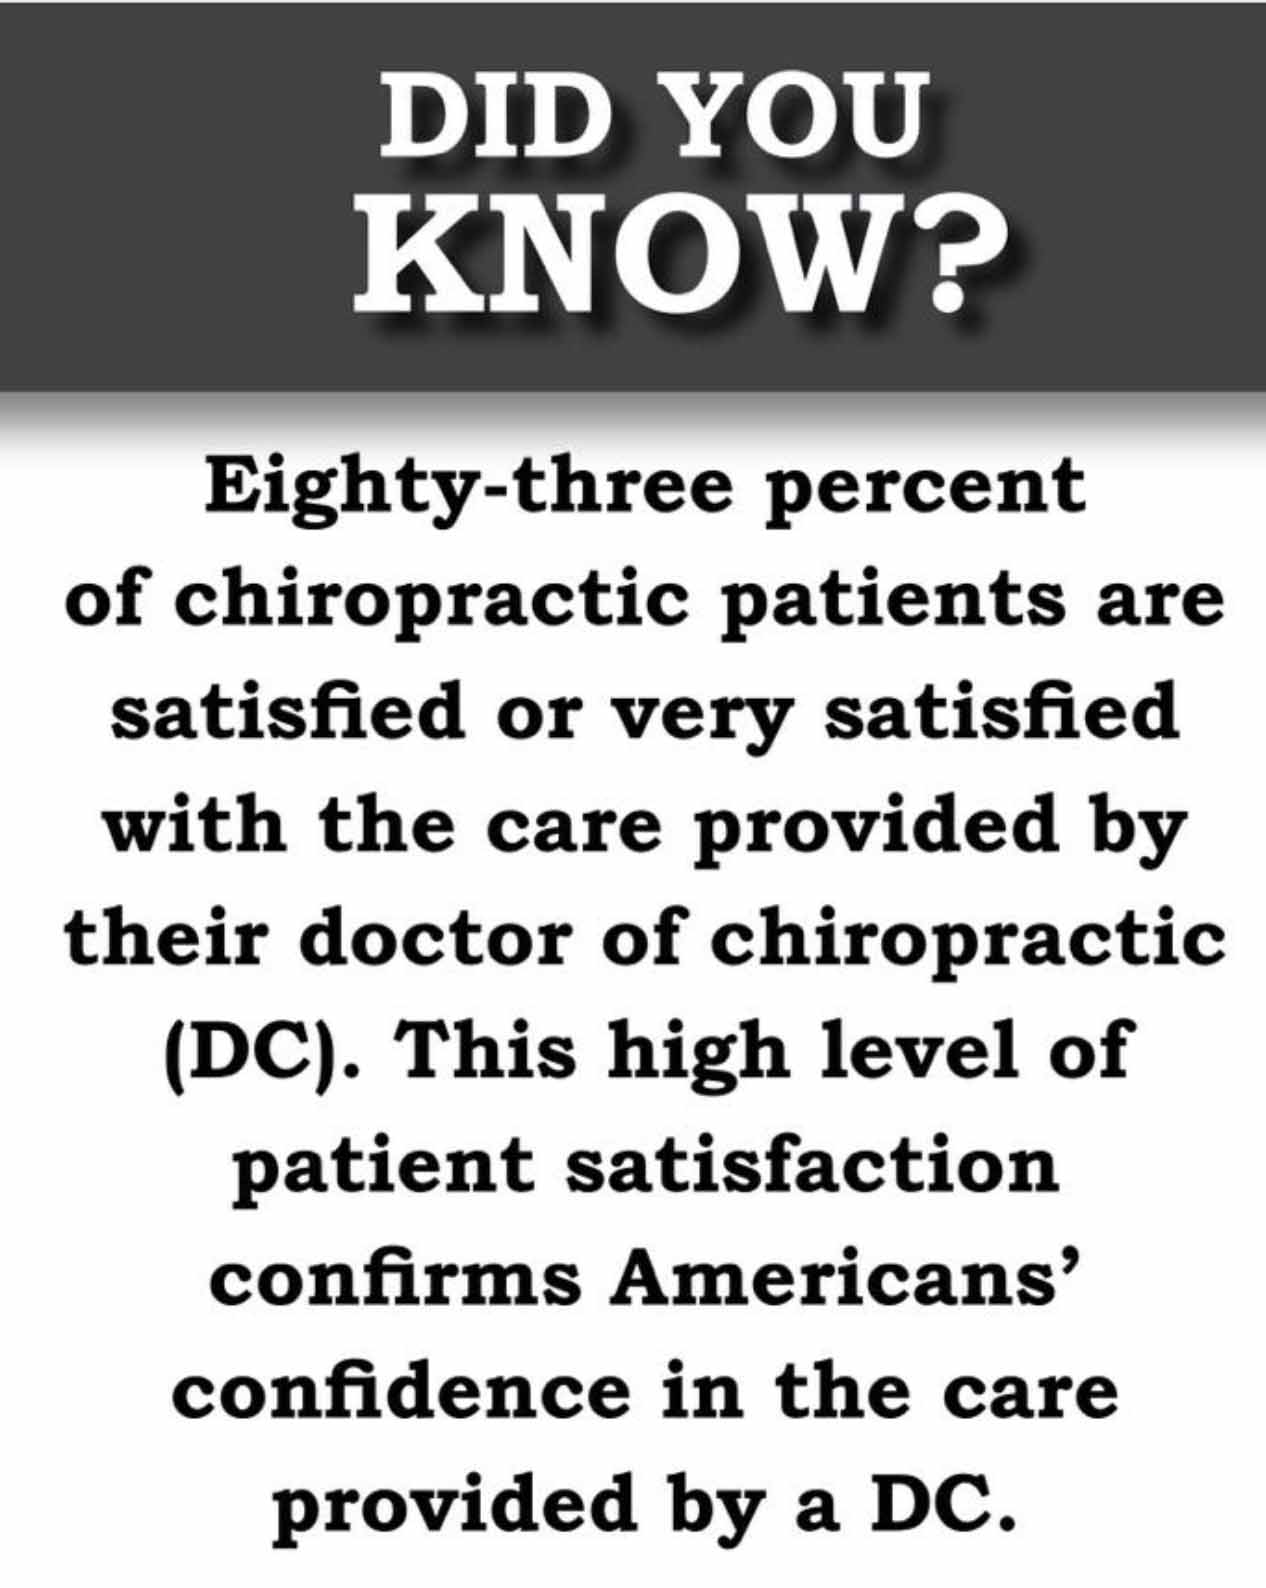 Weimer Chiropractic has high satisfaction.